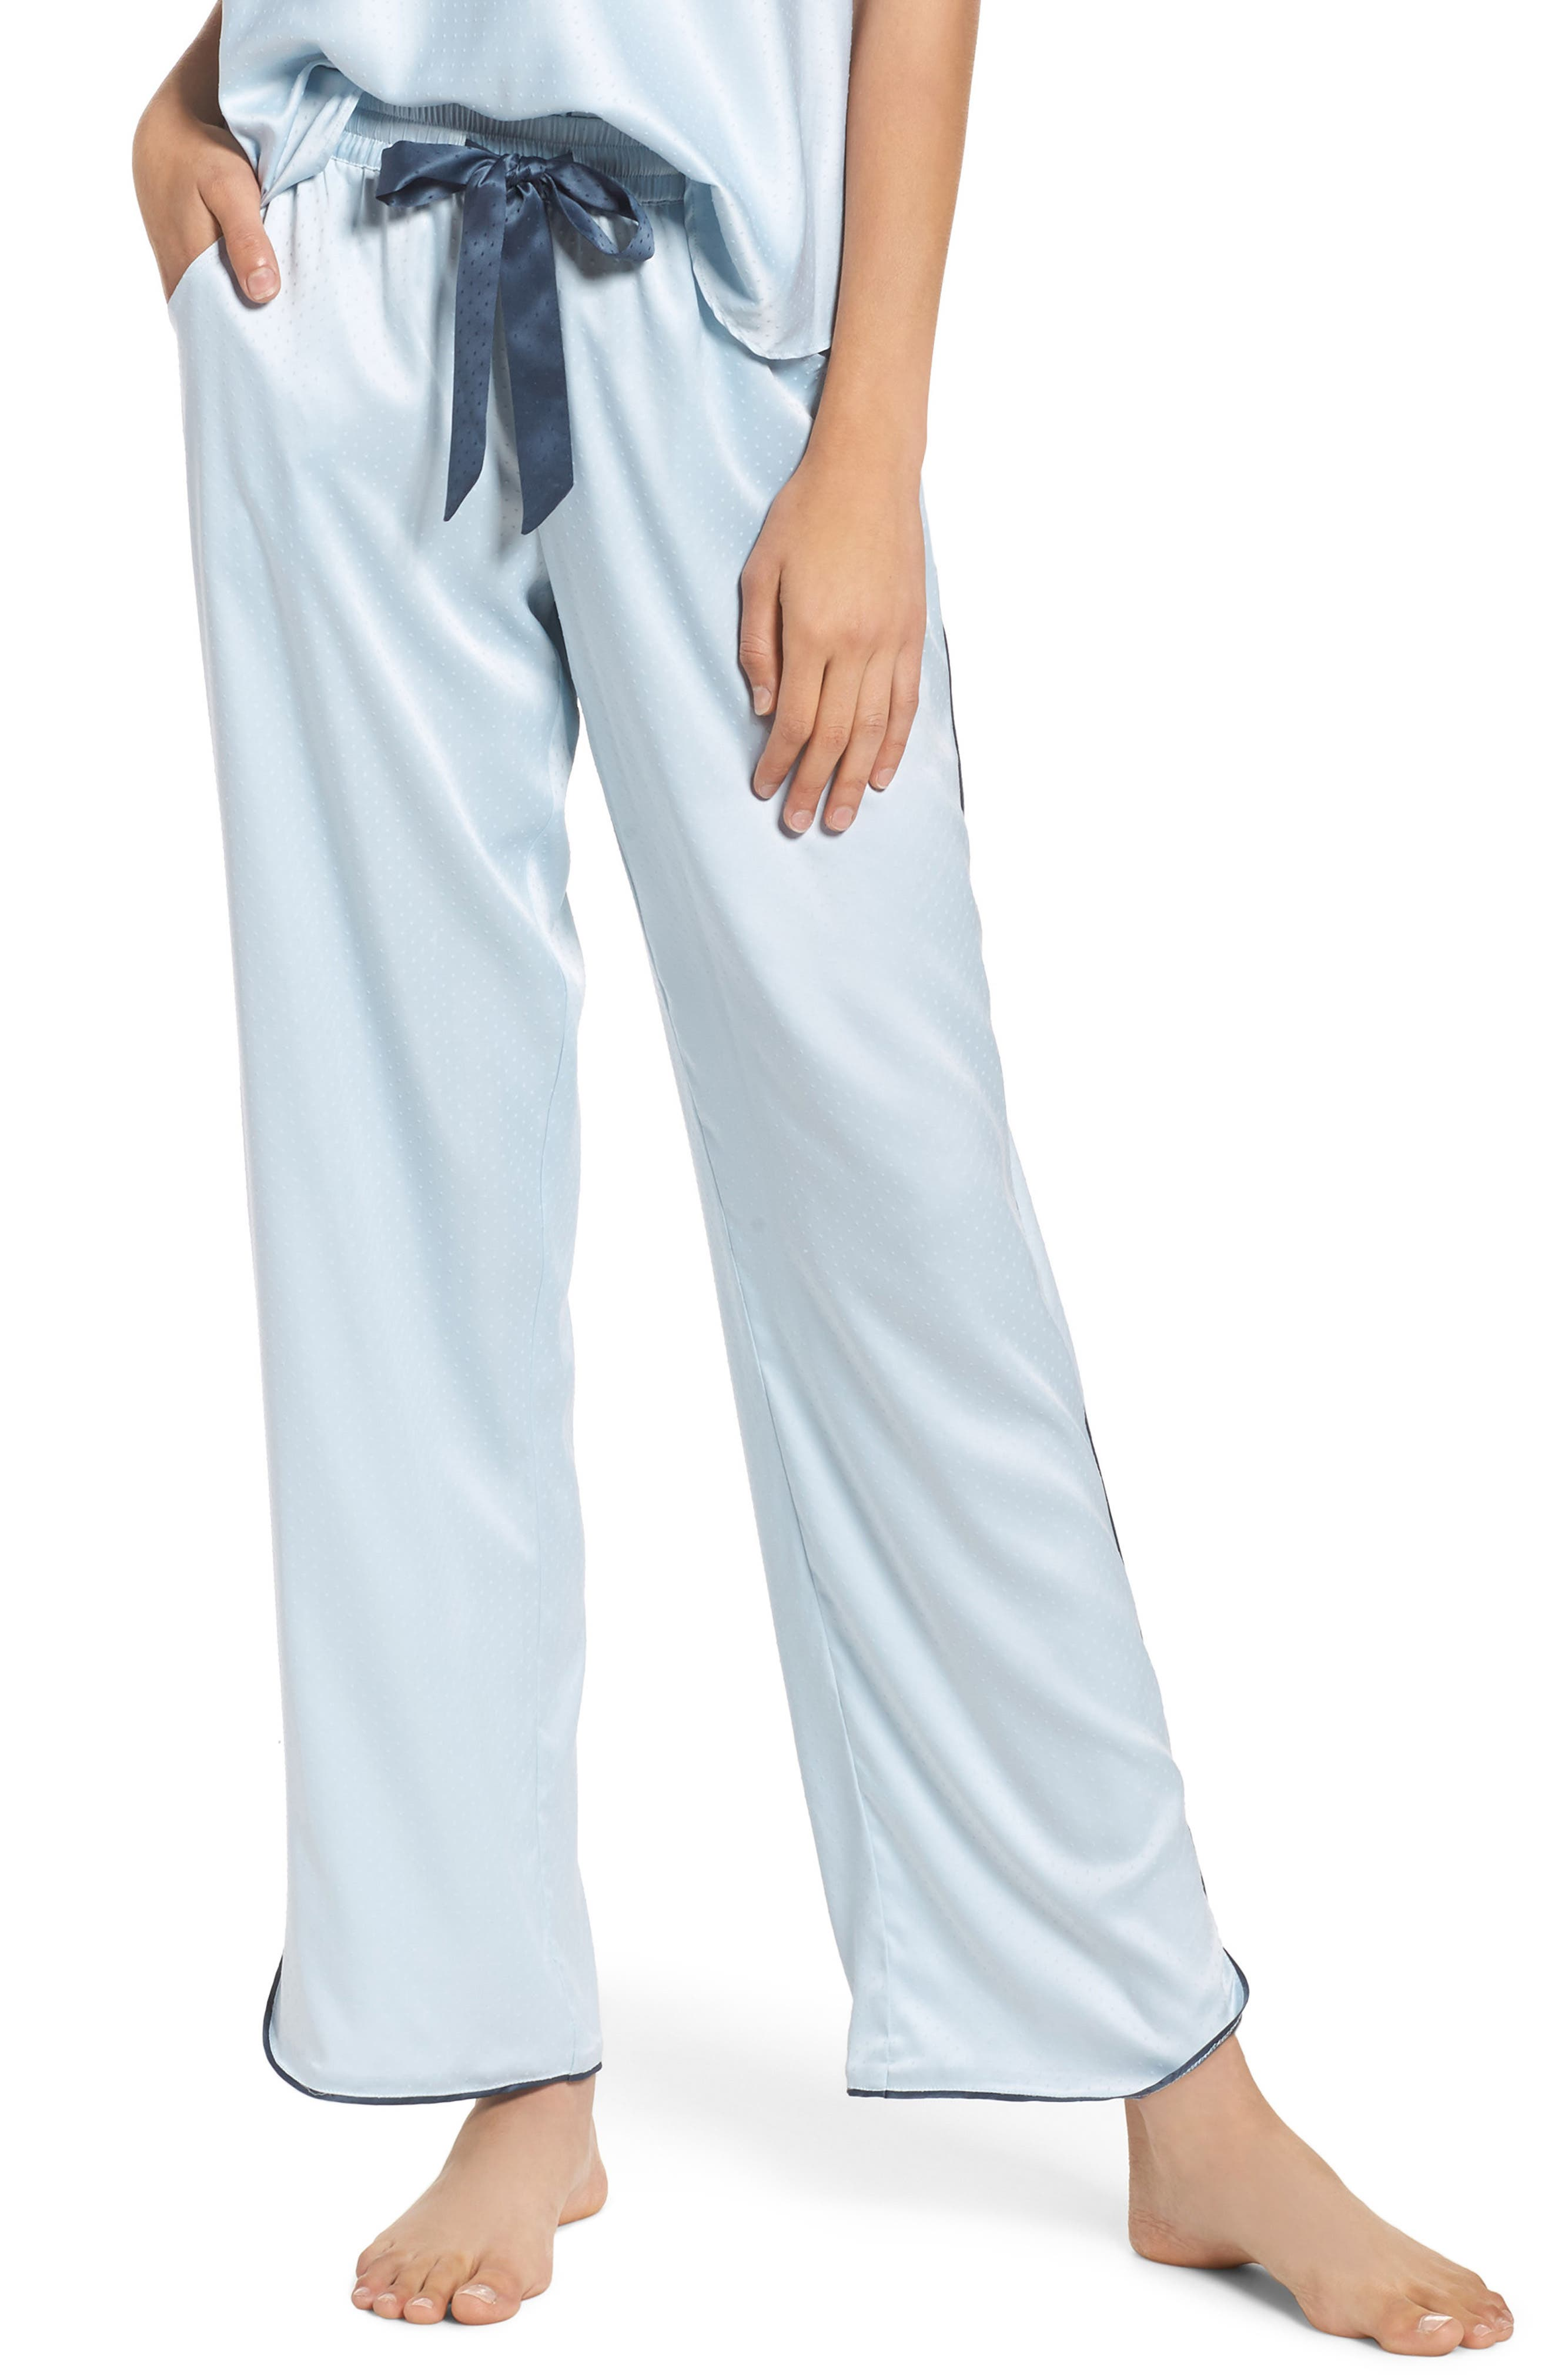 Chelsea27 Late Nights Satin Lounge Pants,                         Main,                         color, Blue Drift